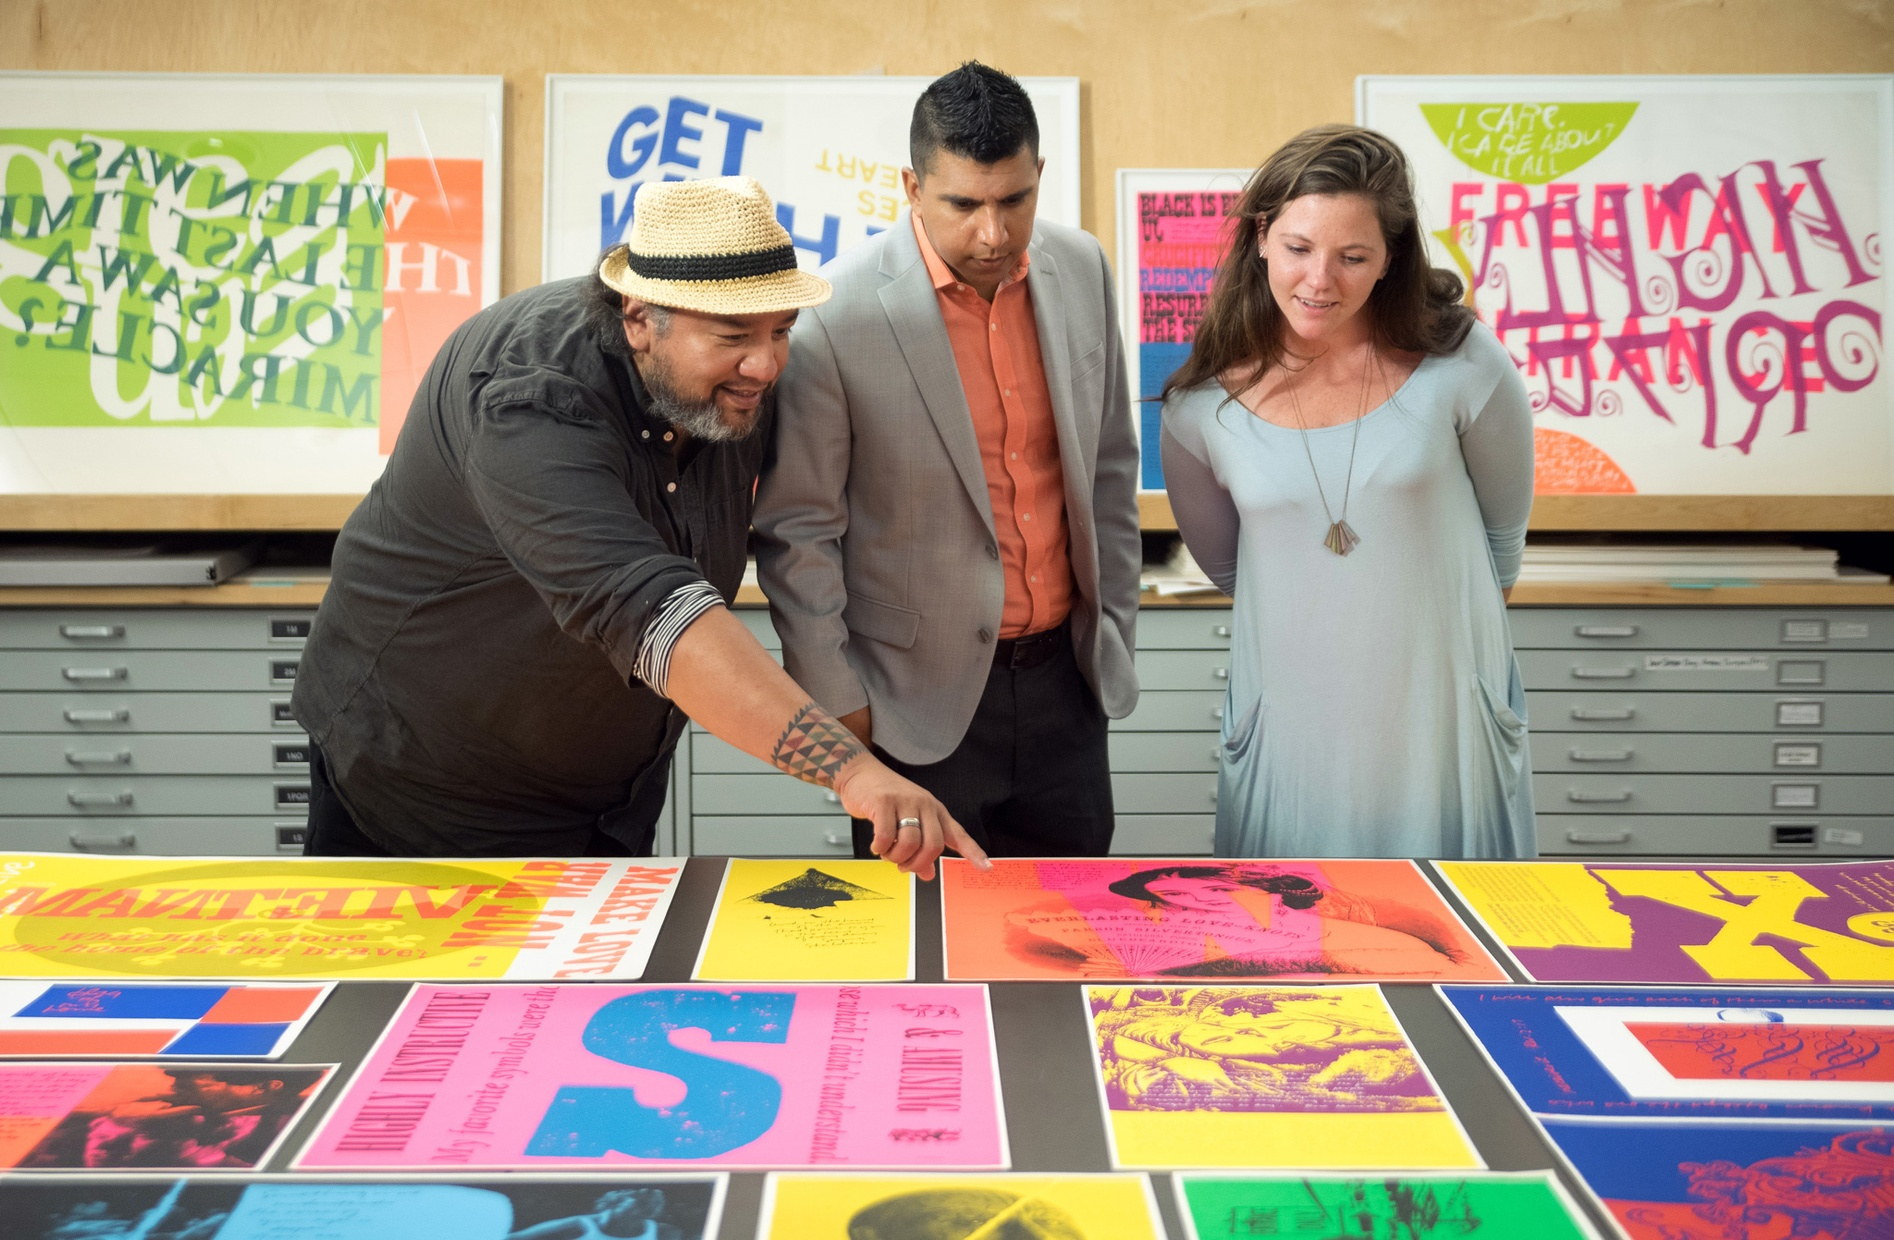 Three people look down at a table covered in colorful screenprints. One of them, a tanned, middle-aged, Native man points to the prints.